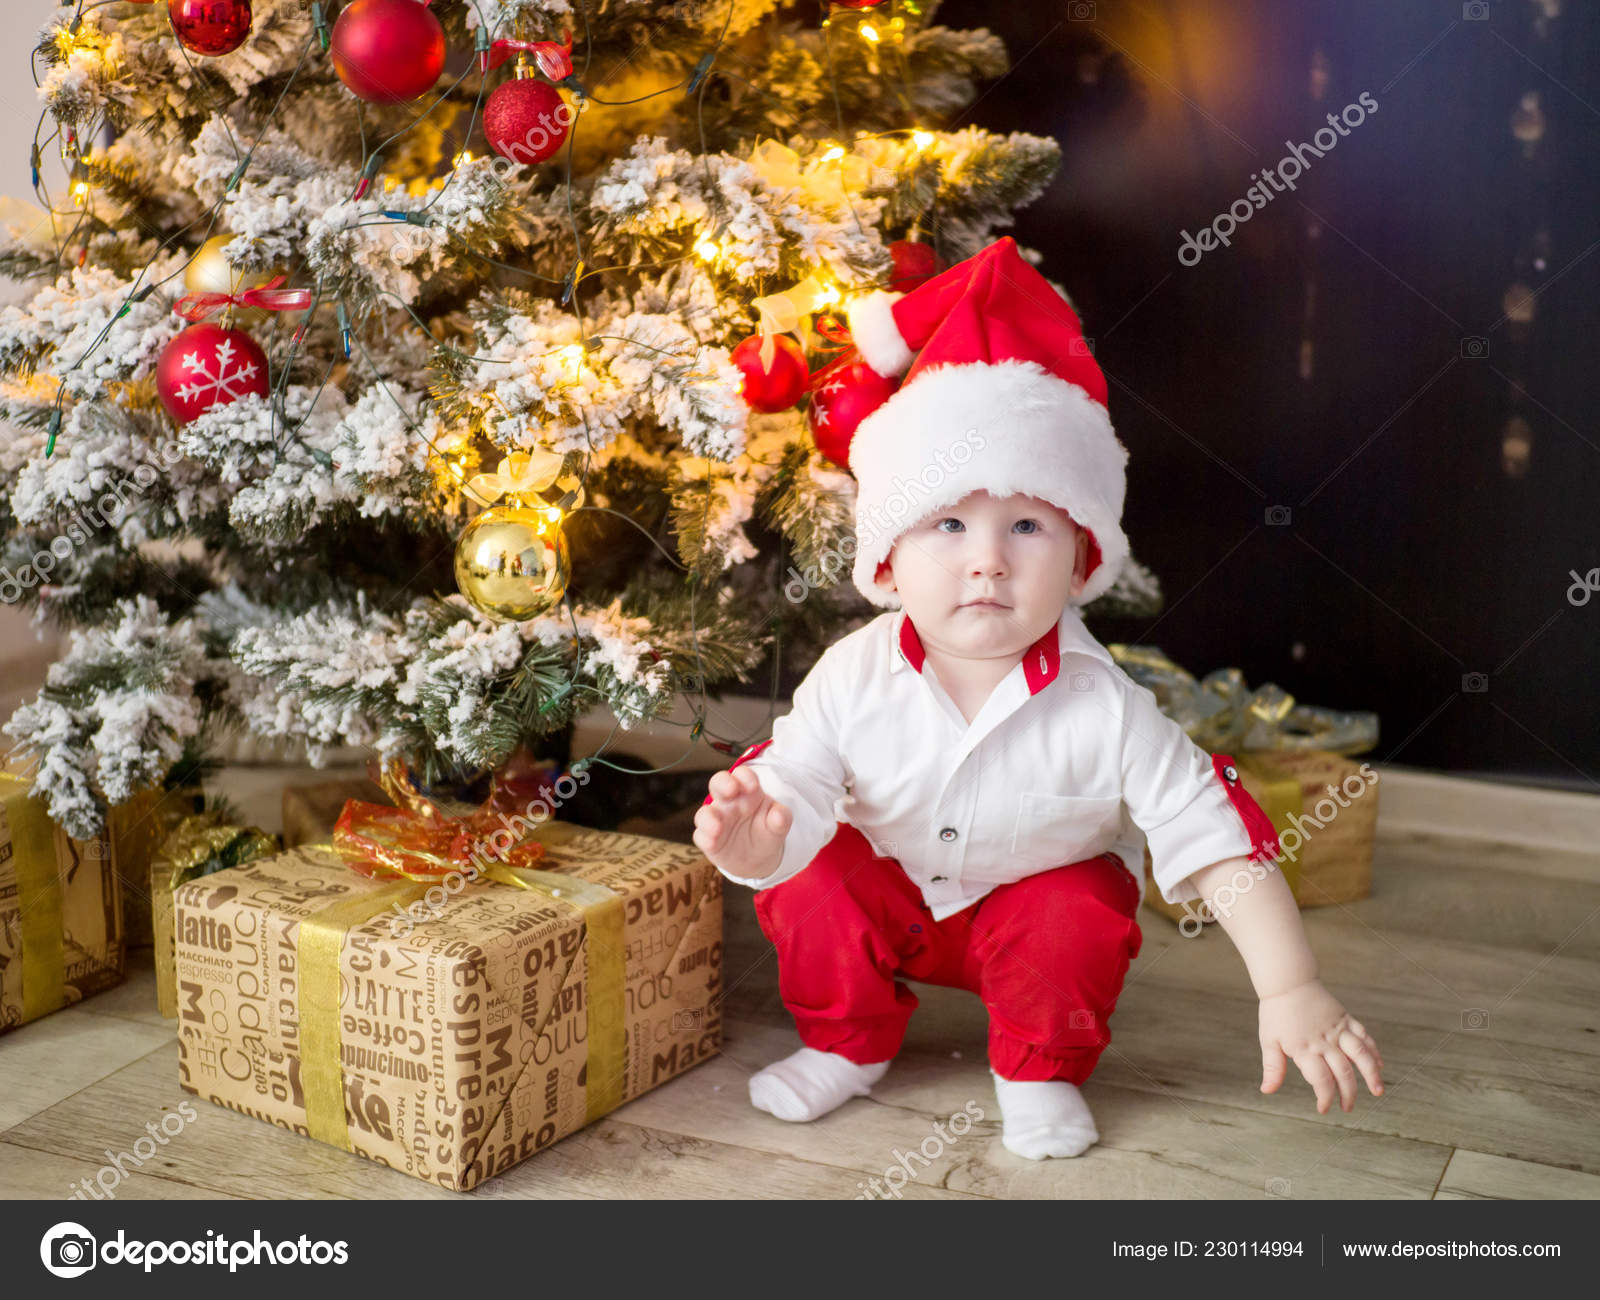 A Small Child In A Red Santa Hat Under An Elegant Christmas Tree With Lights And Balls At Home Stock Photo Image By C Dina777 230114994